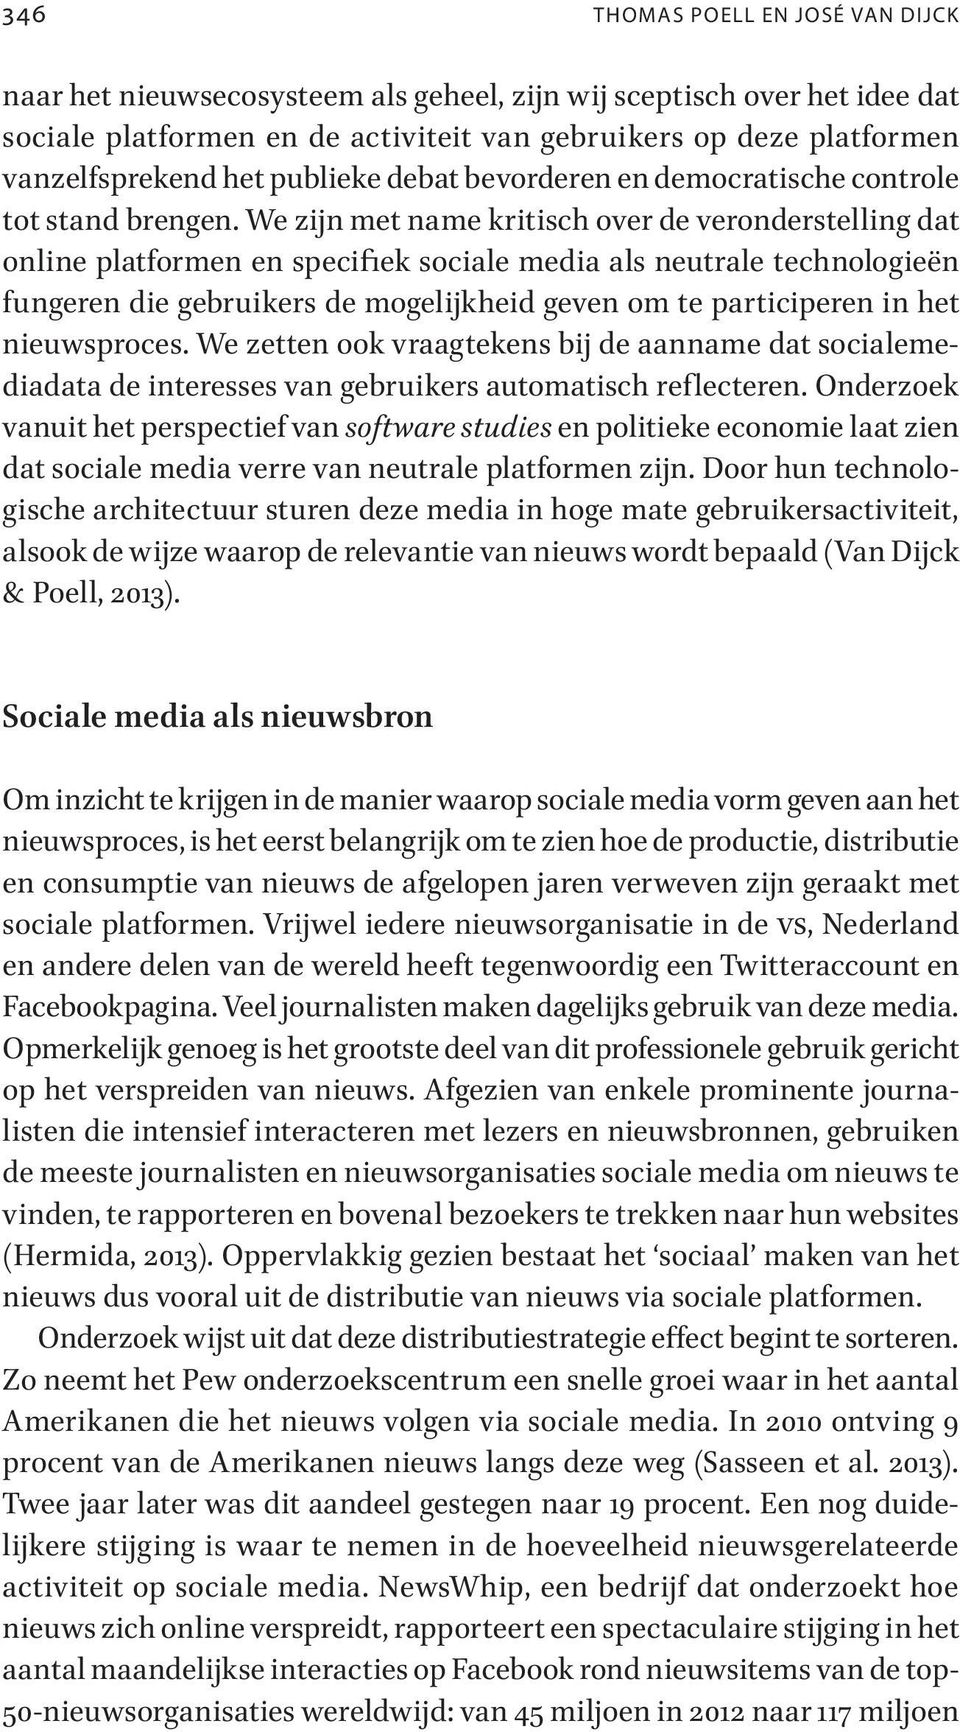 We zijn met name kritisch over de veronderstelling dat online platformen en specifijiek sociale media als neutrale technologieën fungeren die gebruikers de mogelijkheid geven om te participeren in het